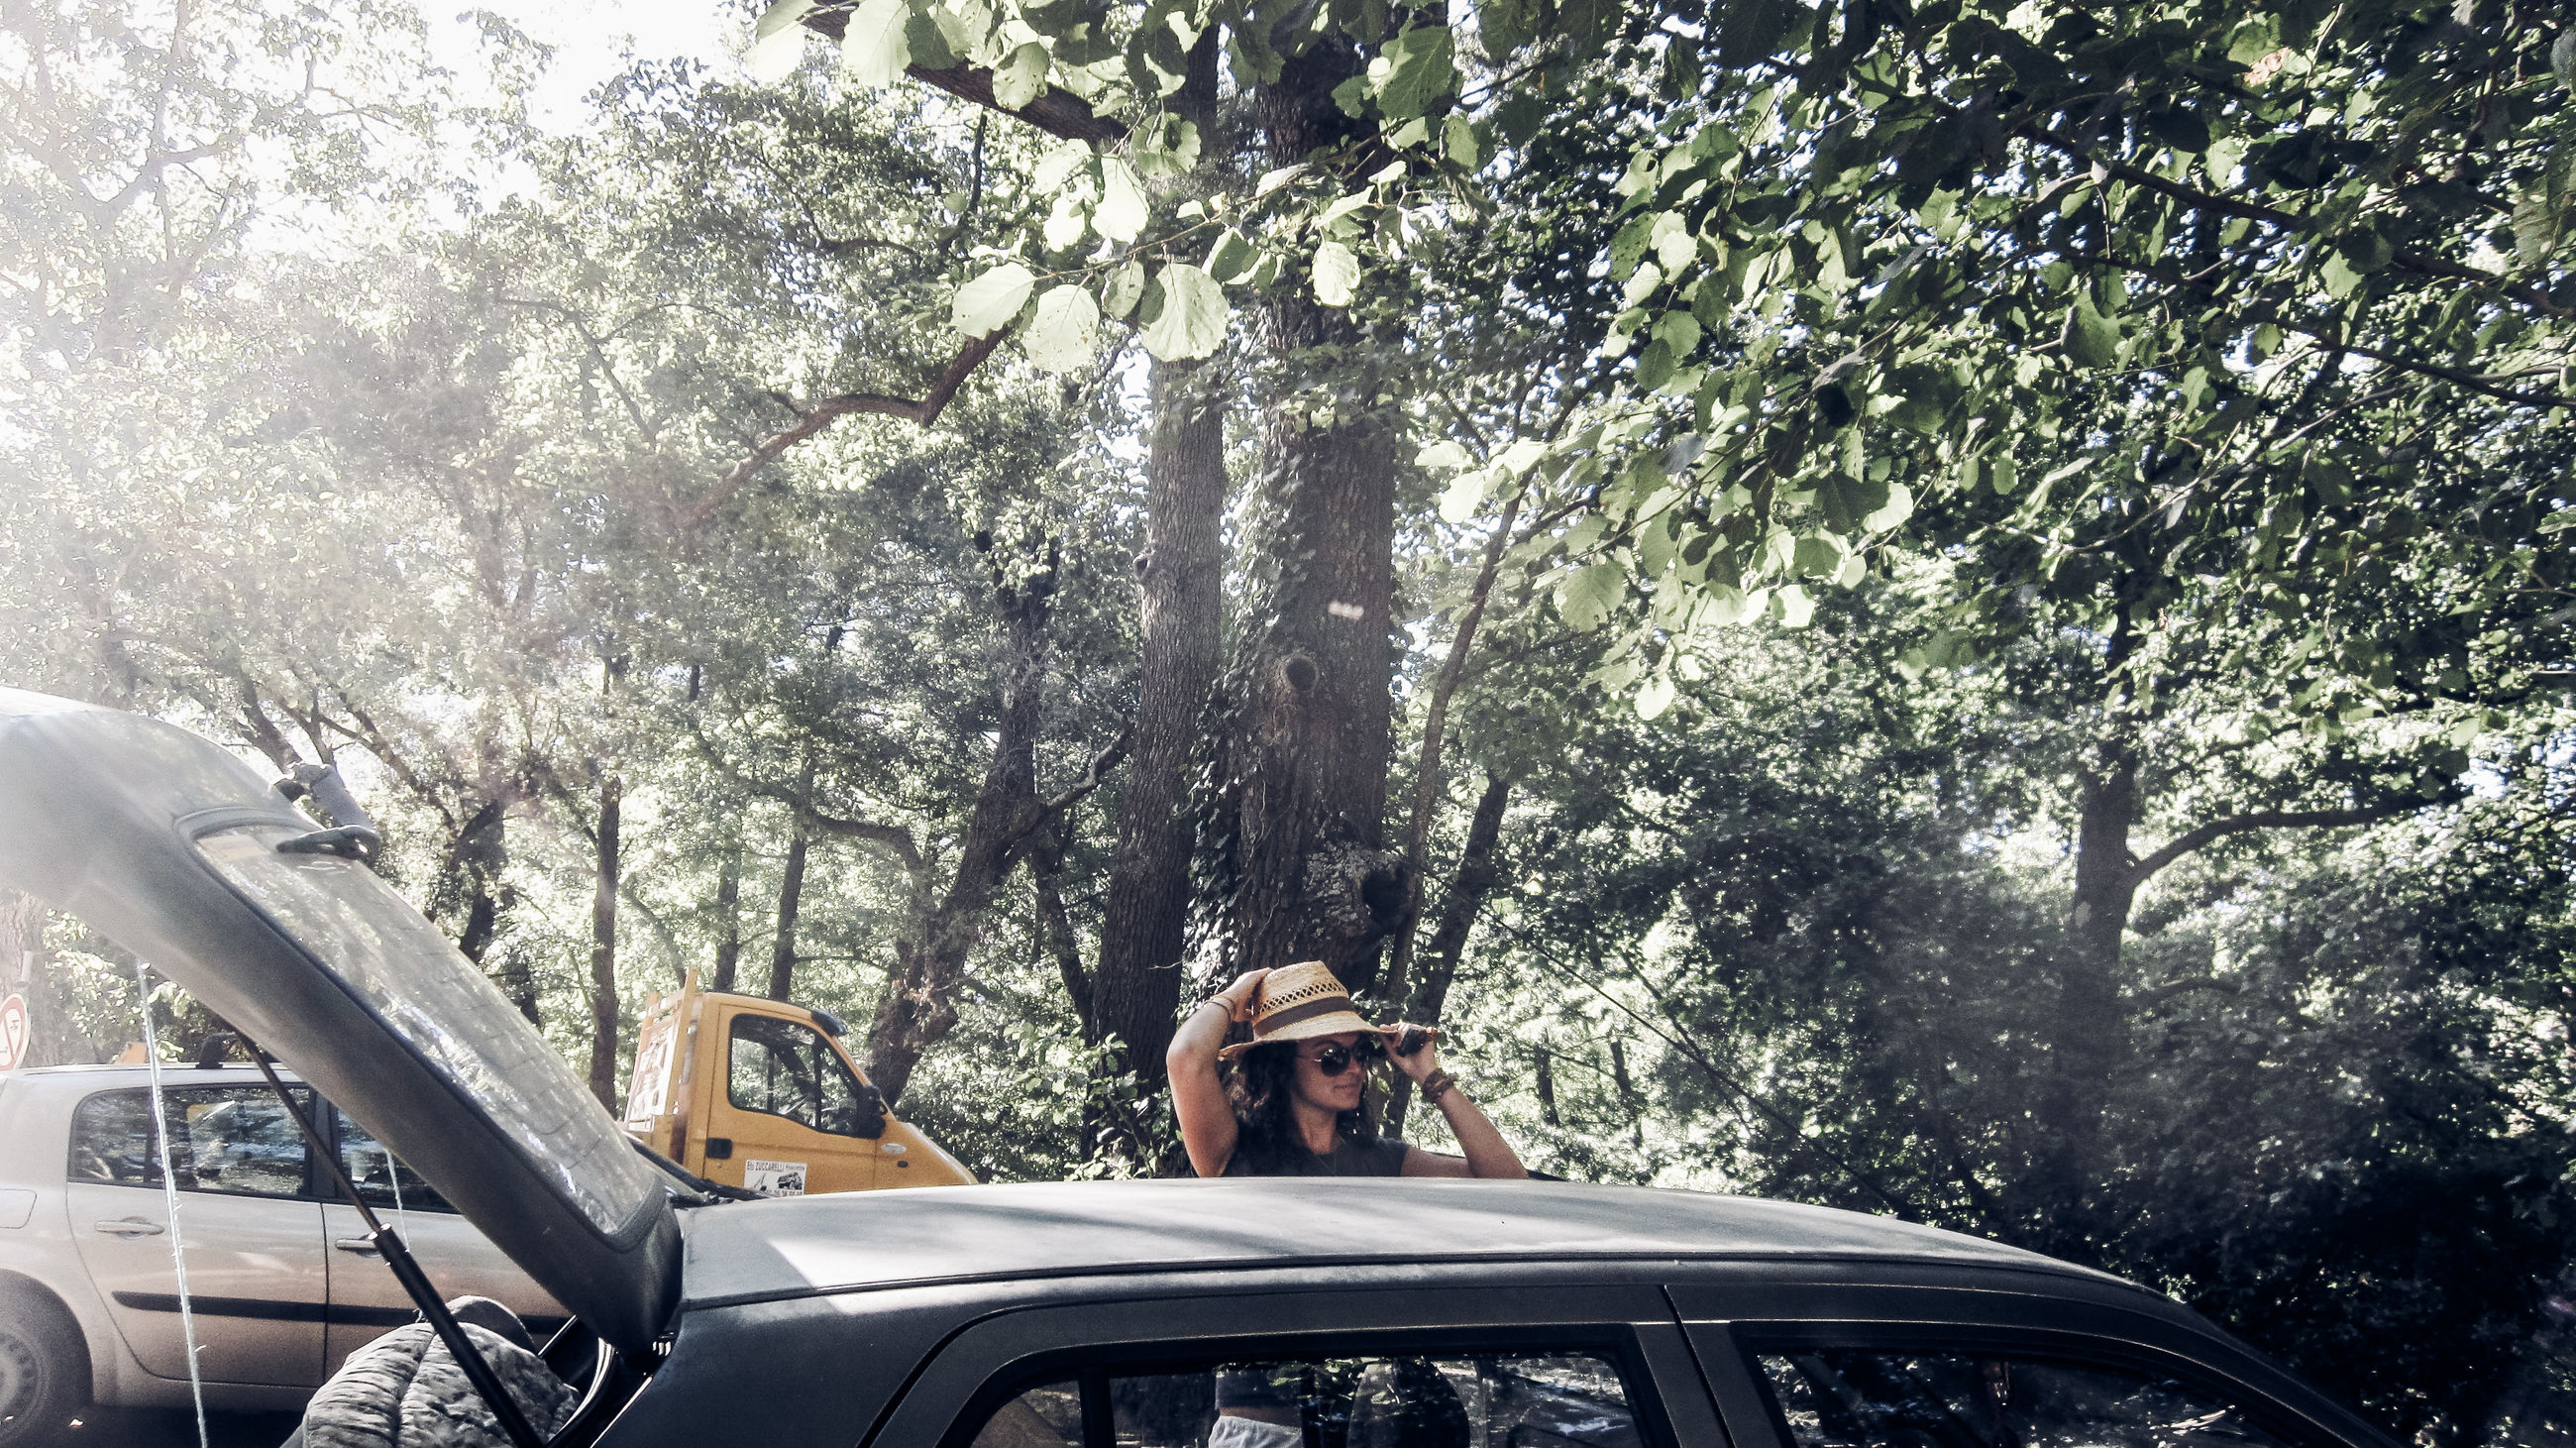 tree, mode of transportation, transportation, car, plant, motor vehicle, one person, land vehicle, nature, day, real people, lifestyles, travel, outdoors, adult, sitting, growth, men, front view